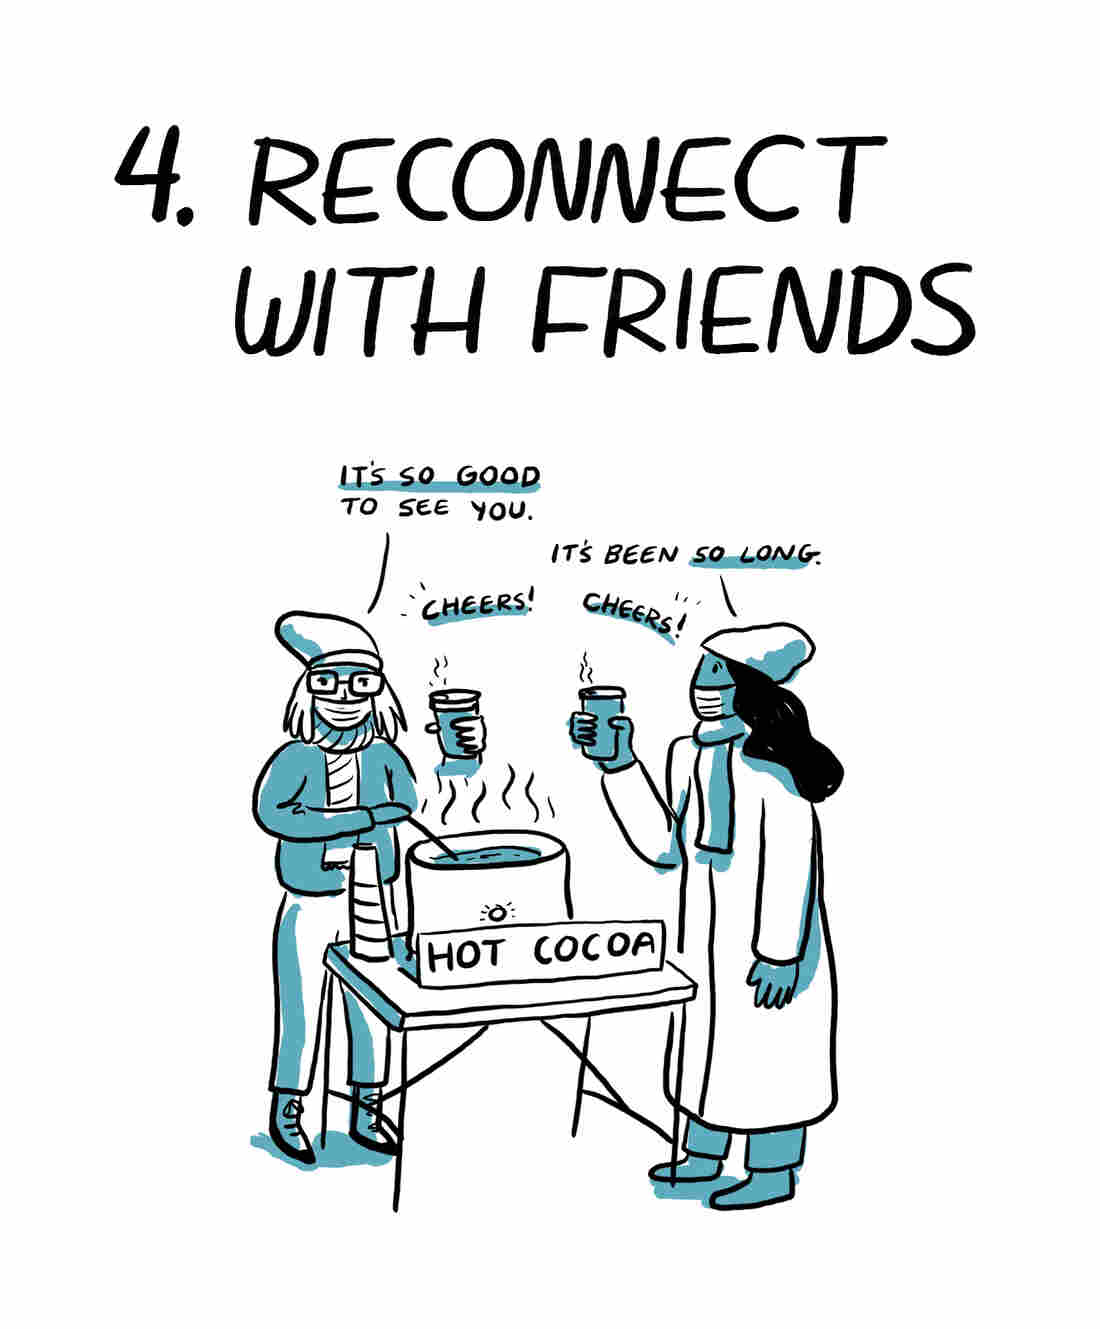 4. Reconnect with friends.